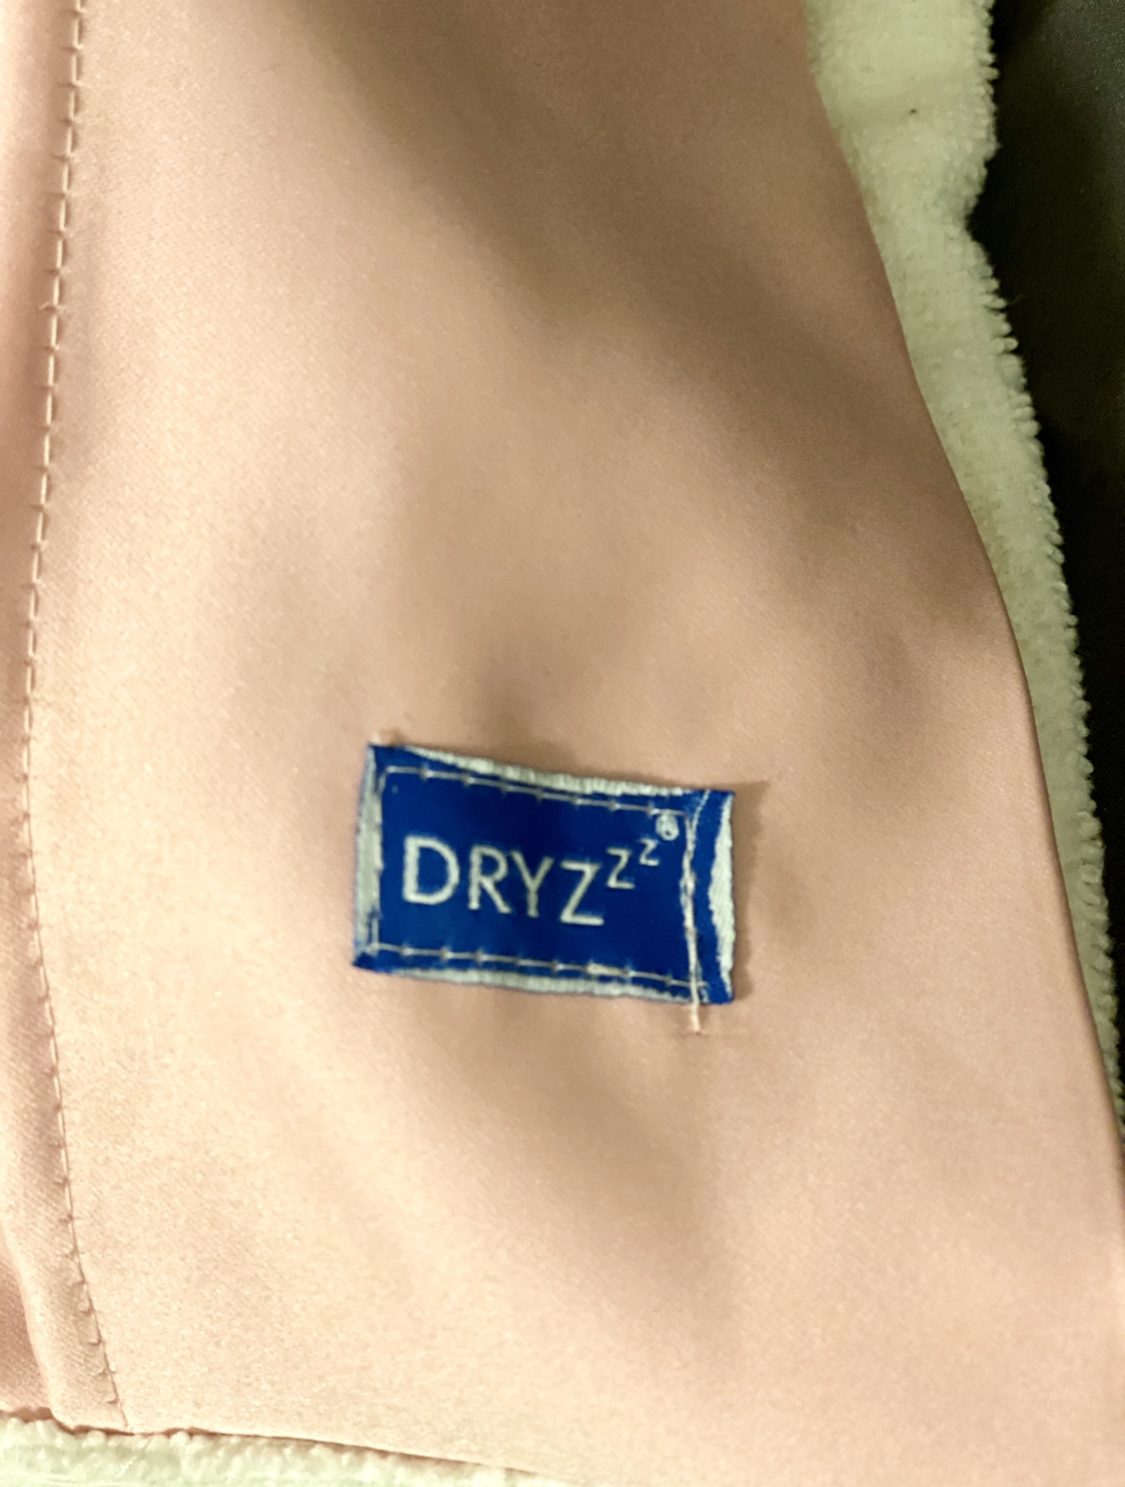 Dryzzz pillowcase